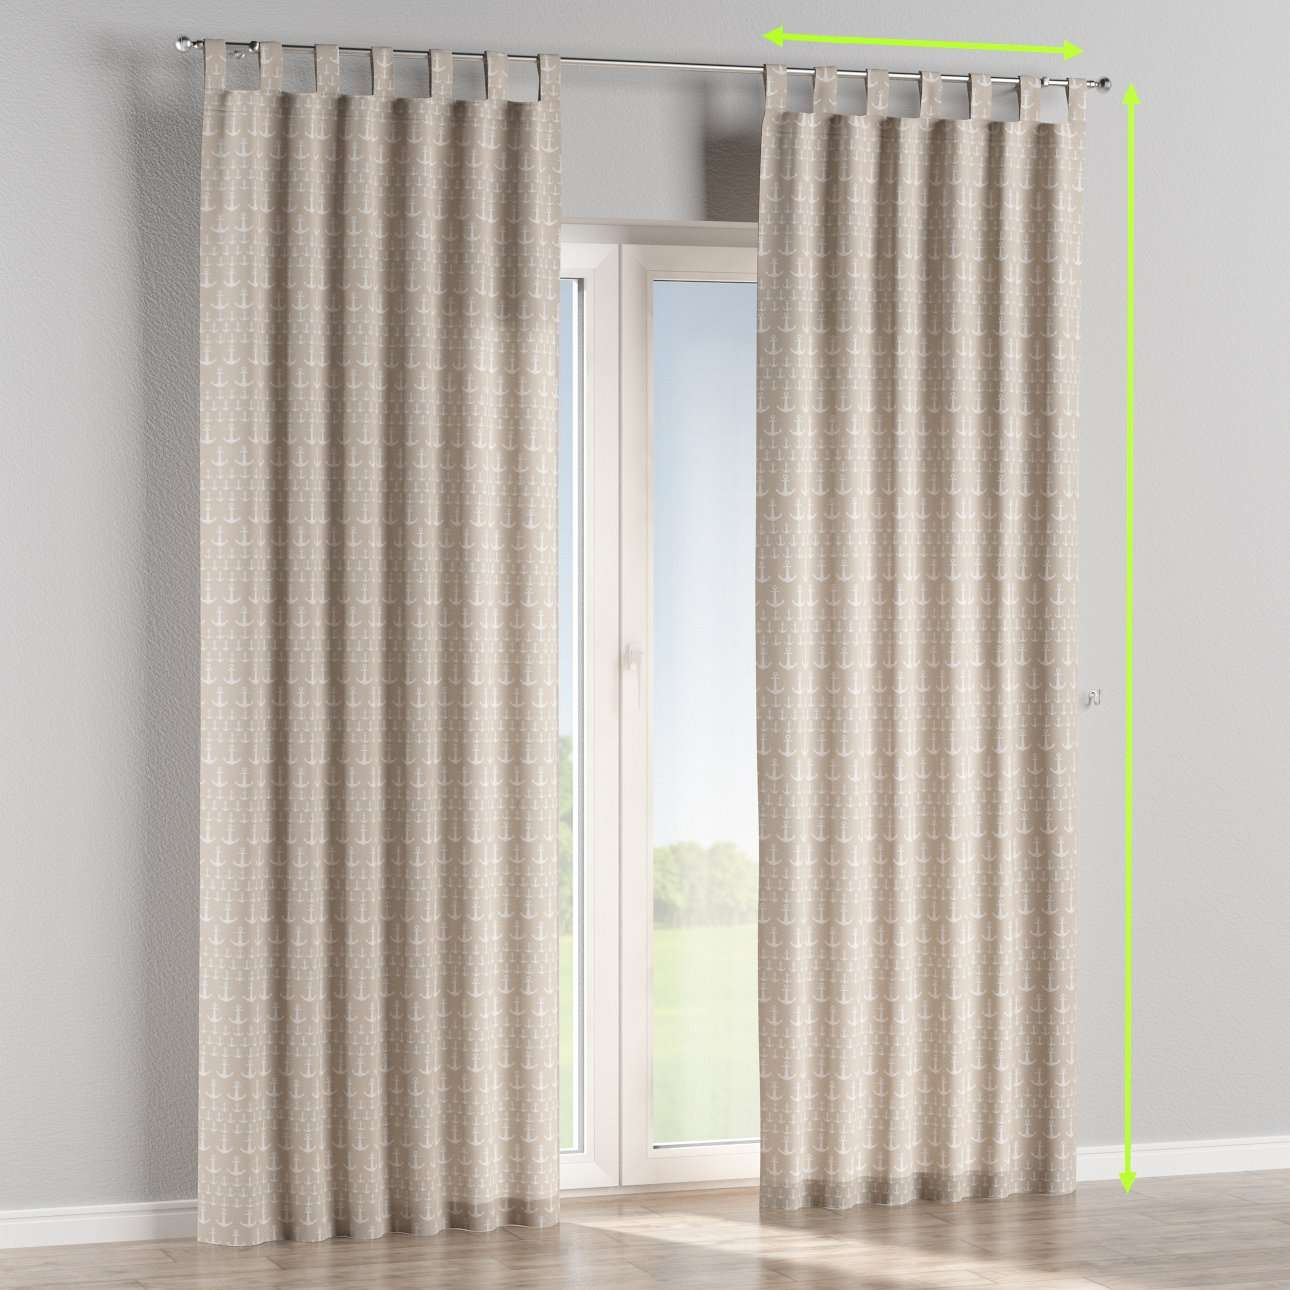 Tab top curtains in collection Marina, fabric: 140-63